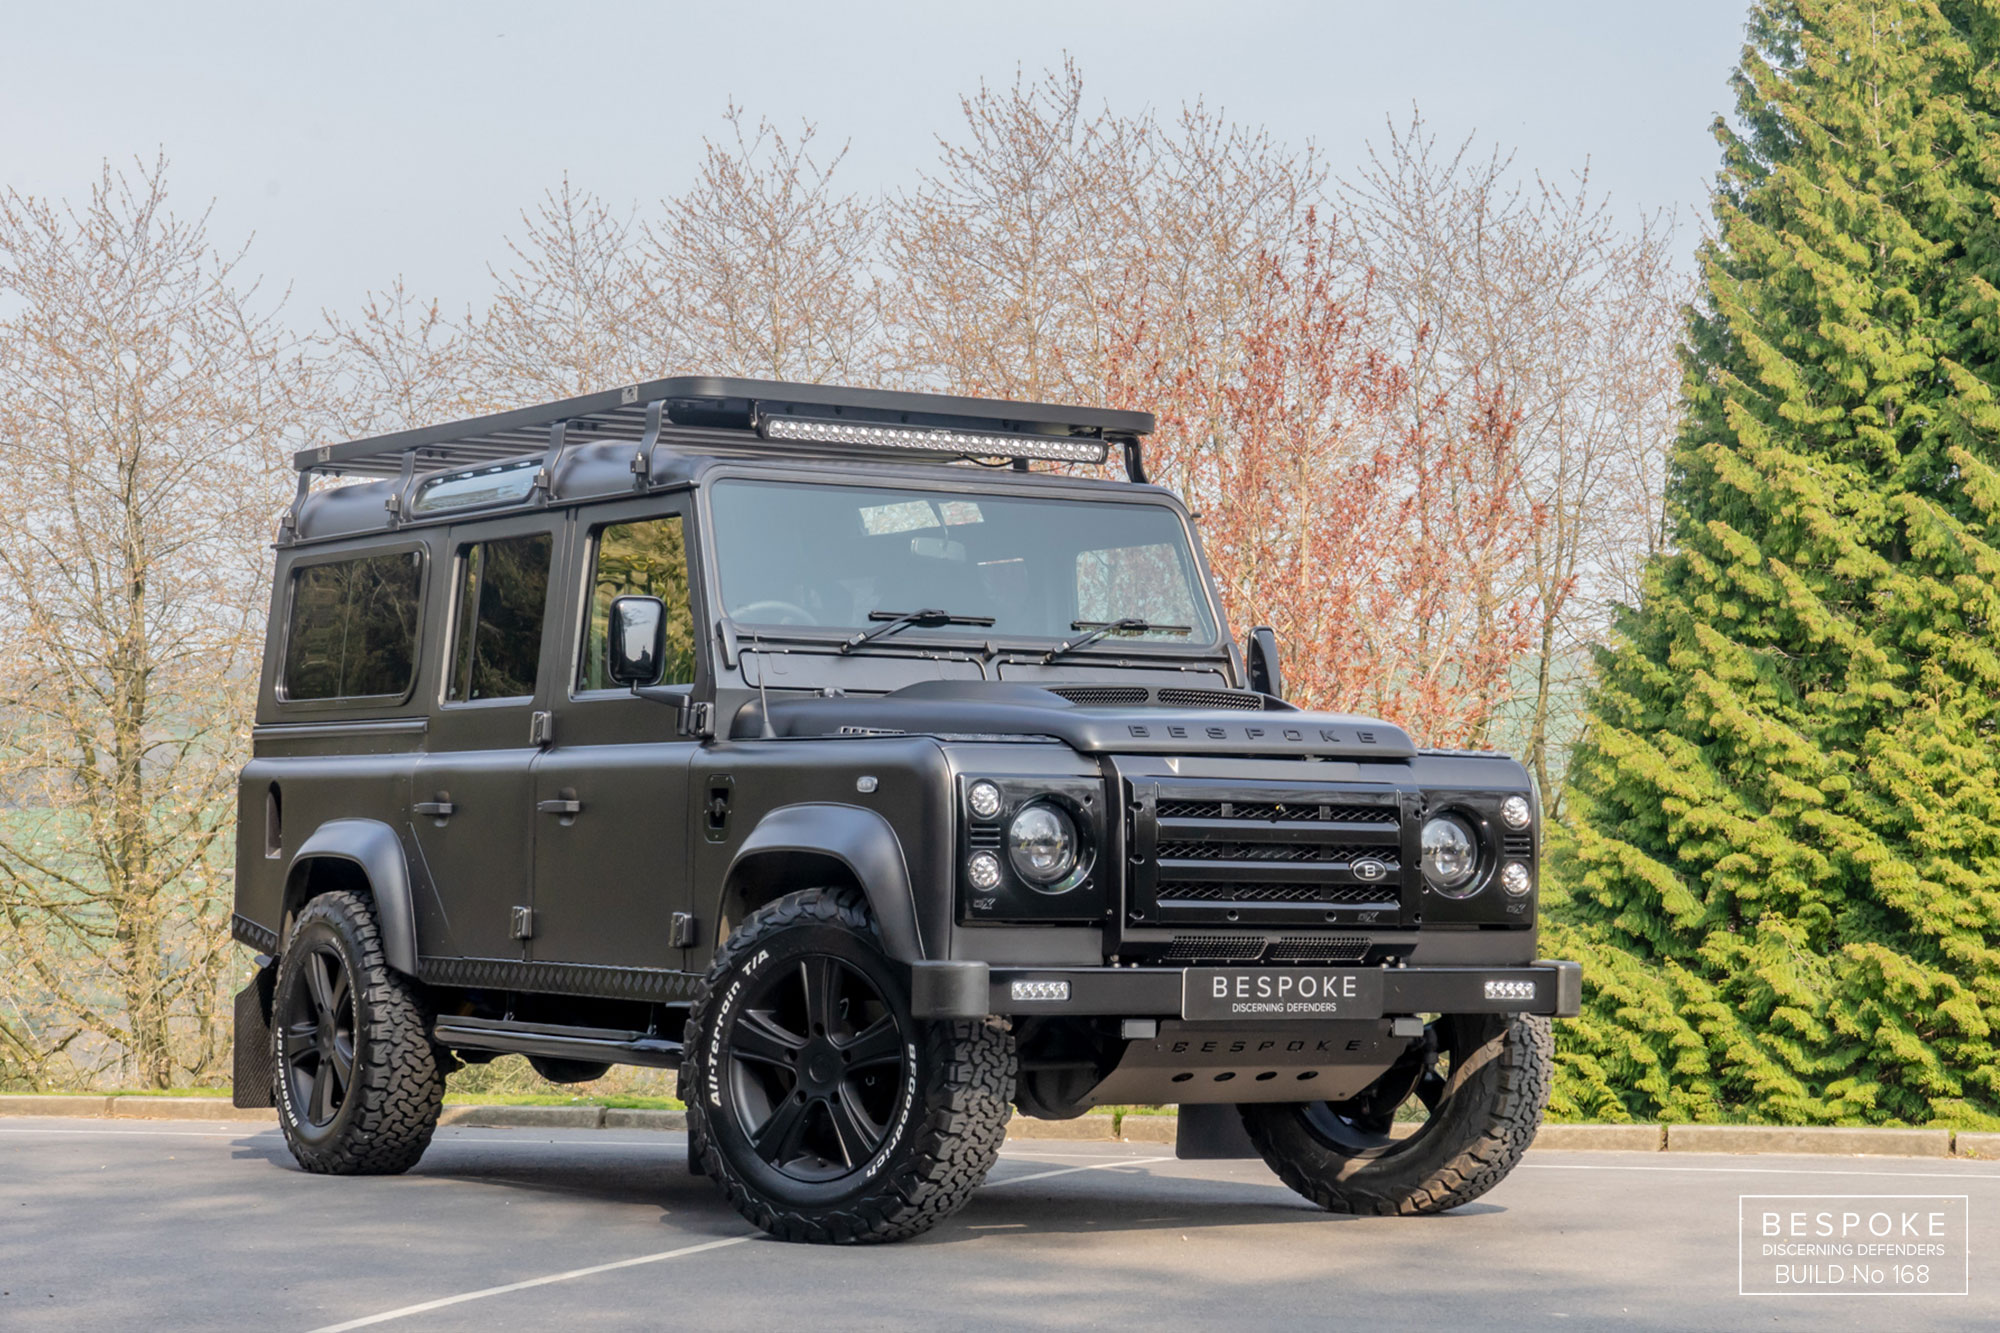 BESPOKE Land Rover Defender Build 206